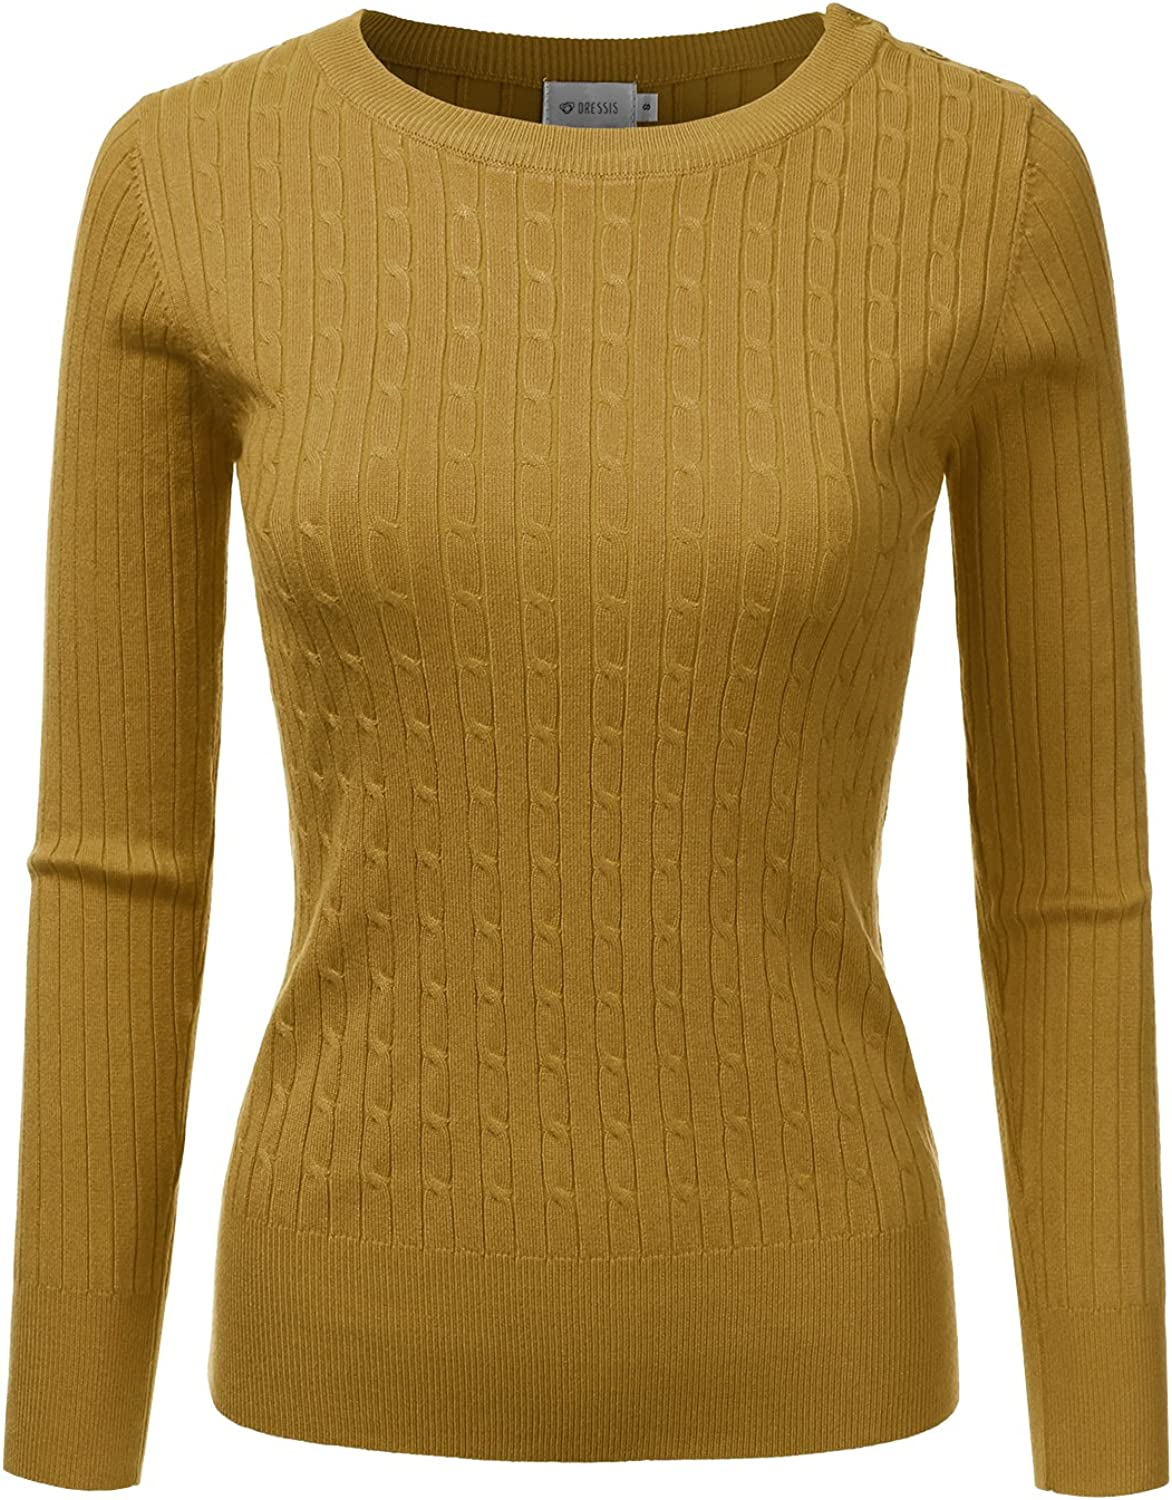 DRESSIS Womens Long Sleeve Round Neck Buttoned Shoulder Cable Knit Sweater Mustard M